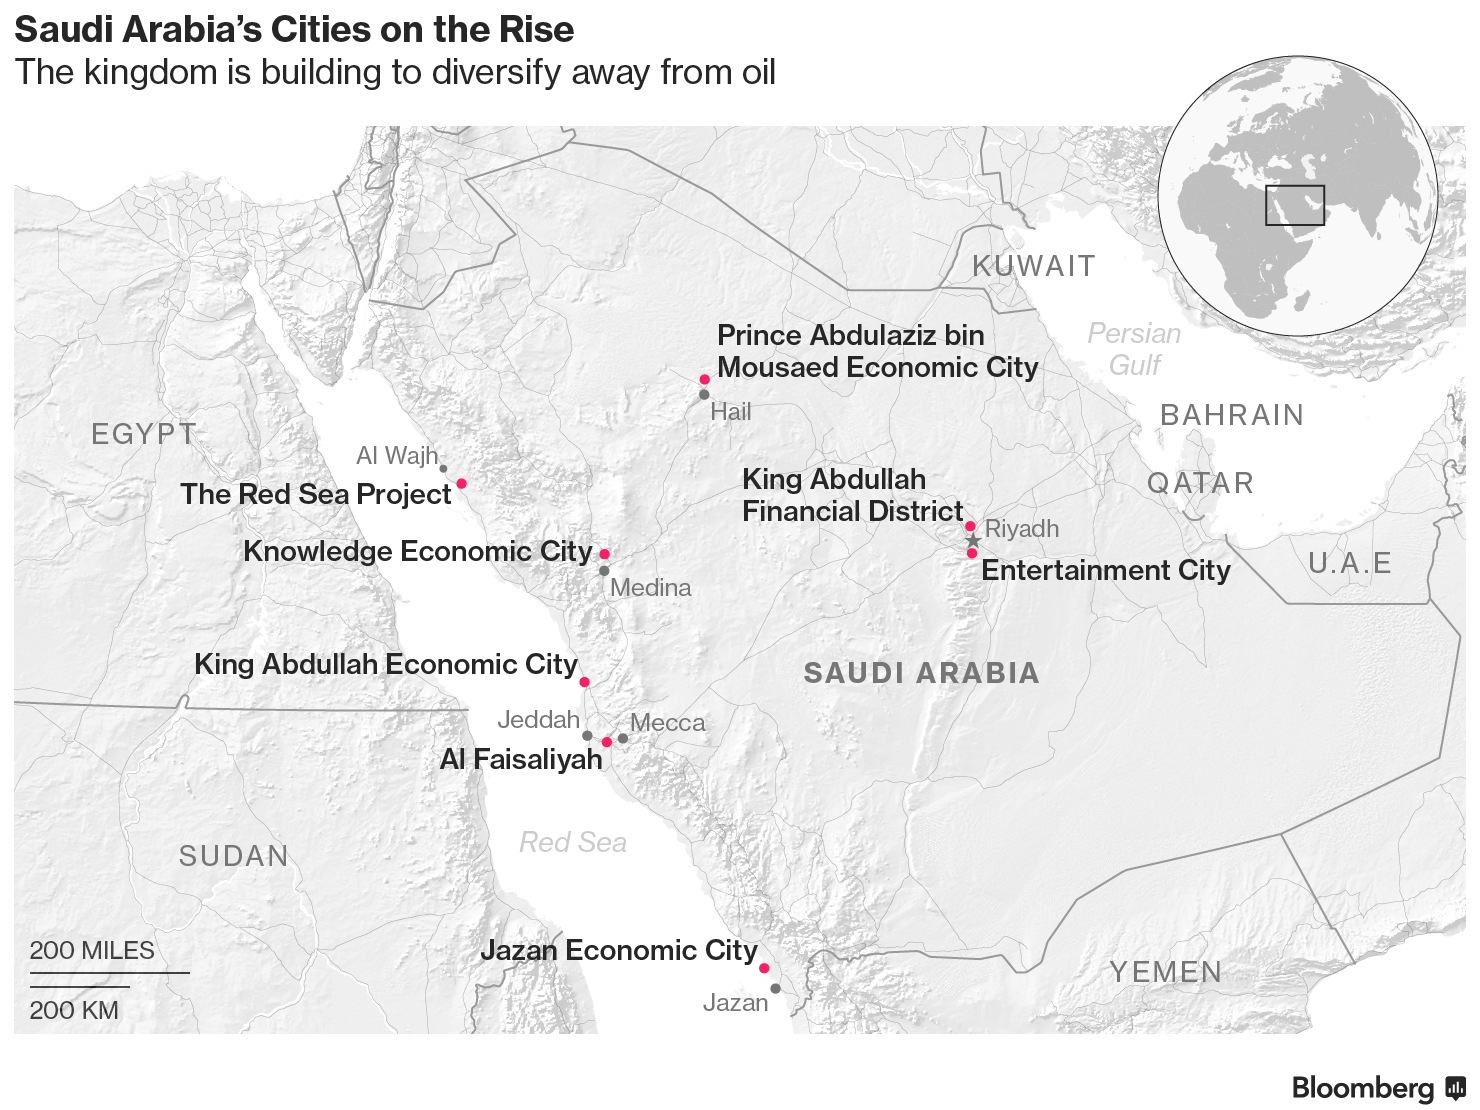 Saudi Arabia Builds Cities in the Sand to Move Beyond Oil